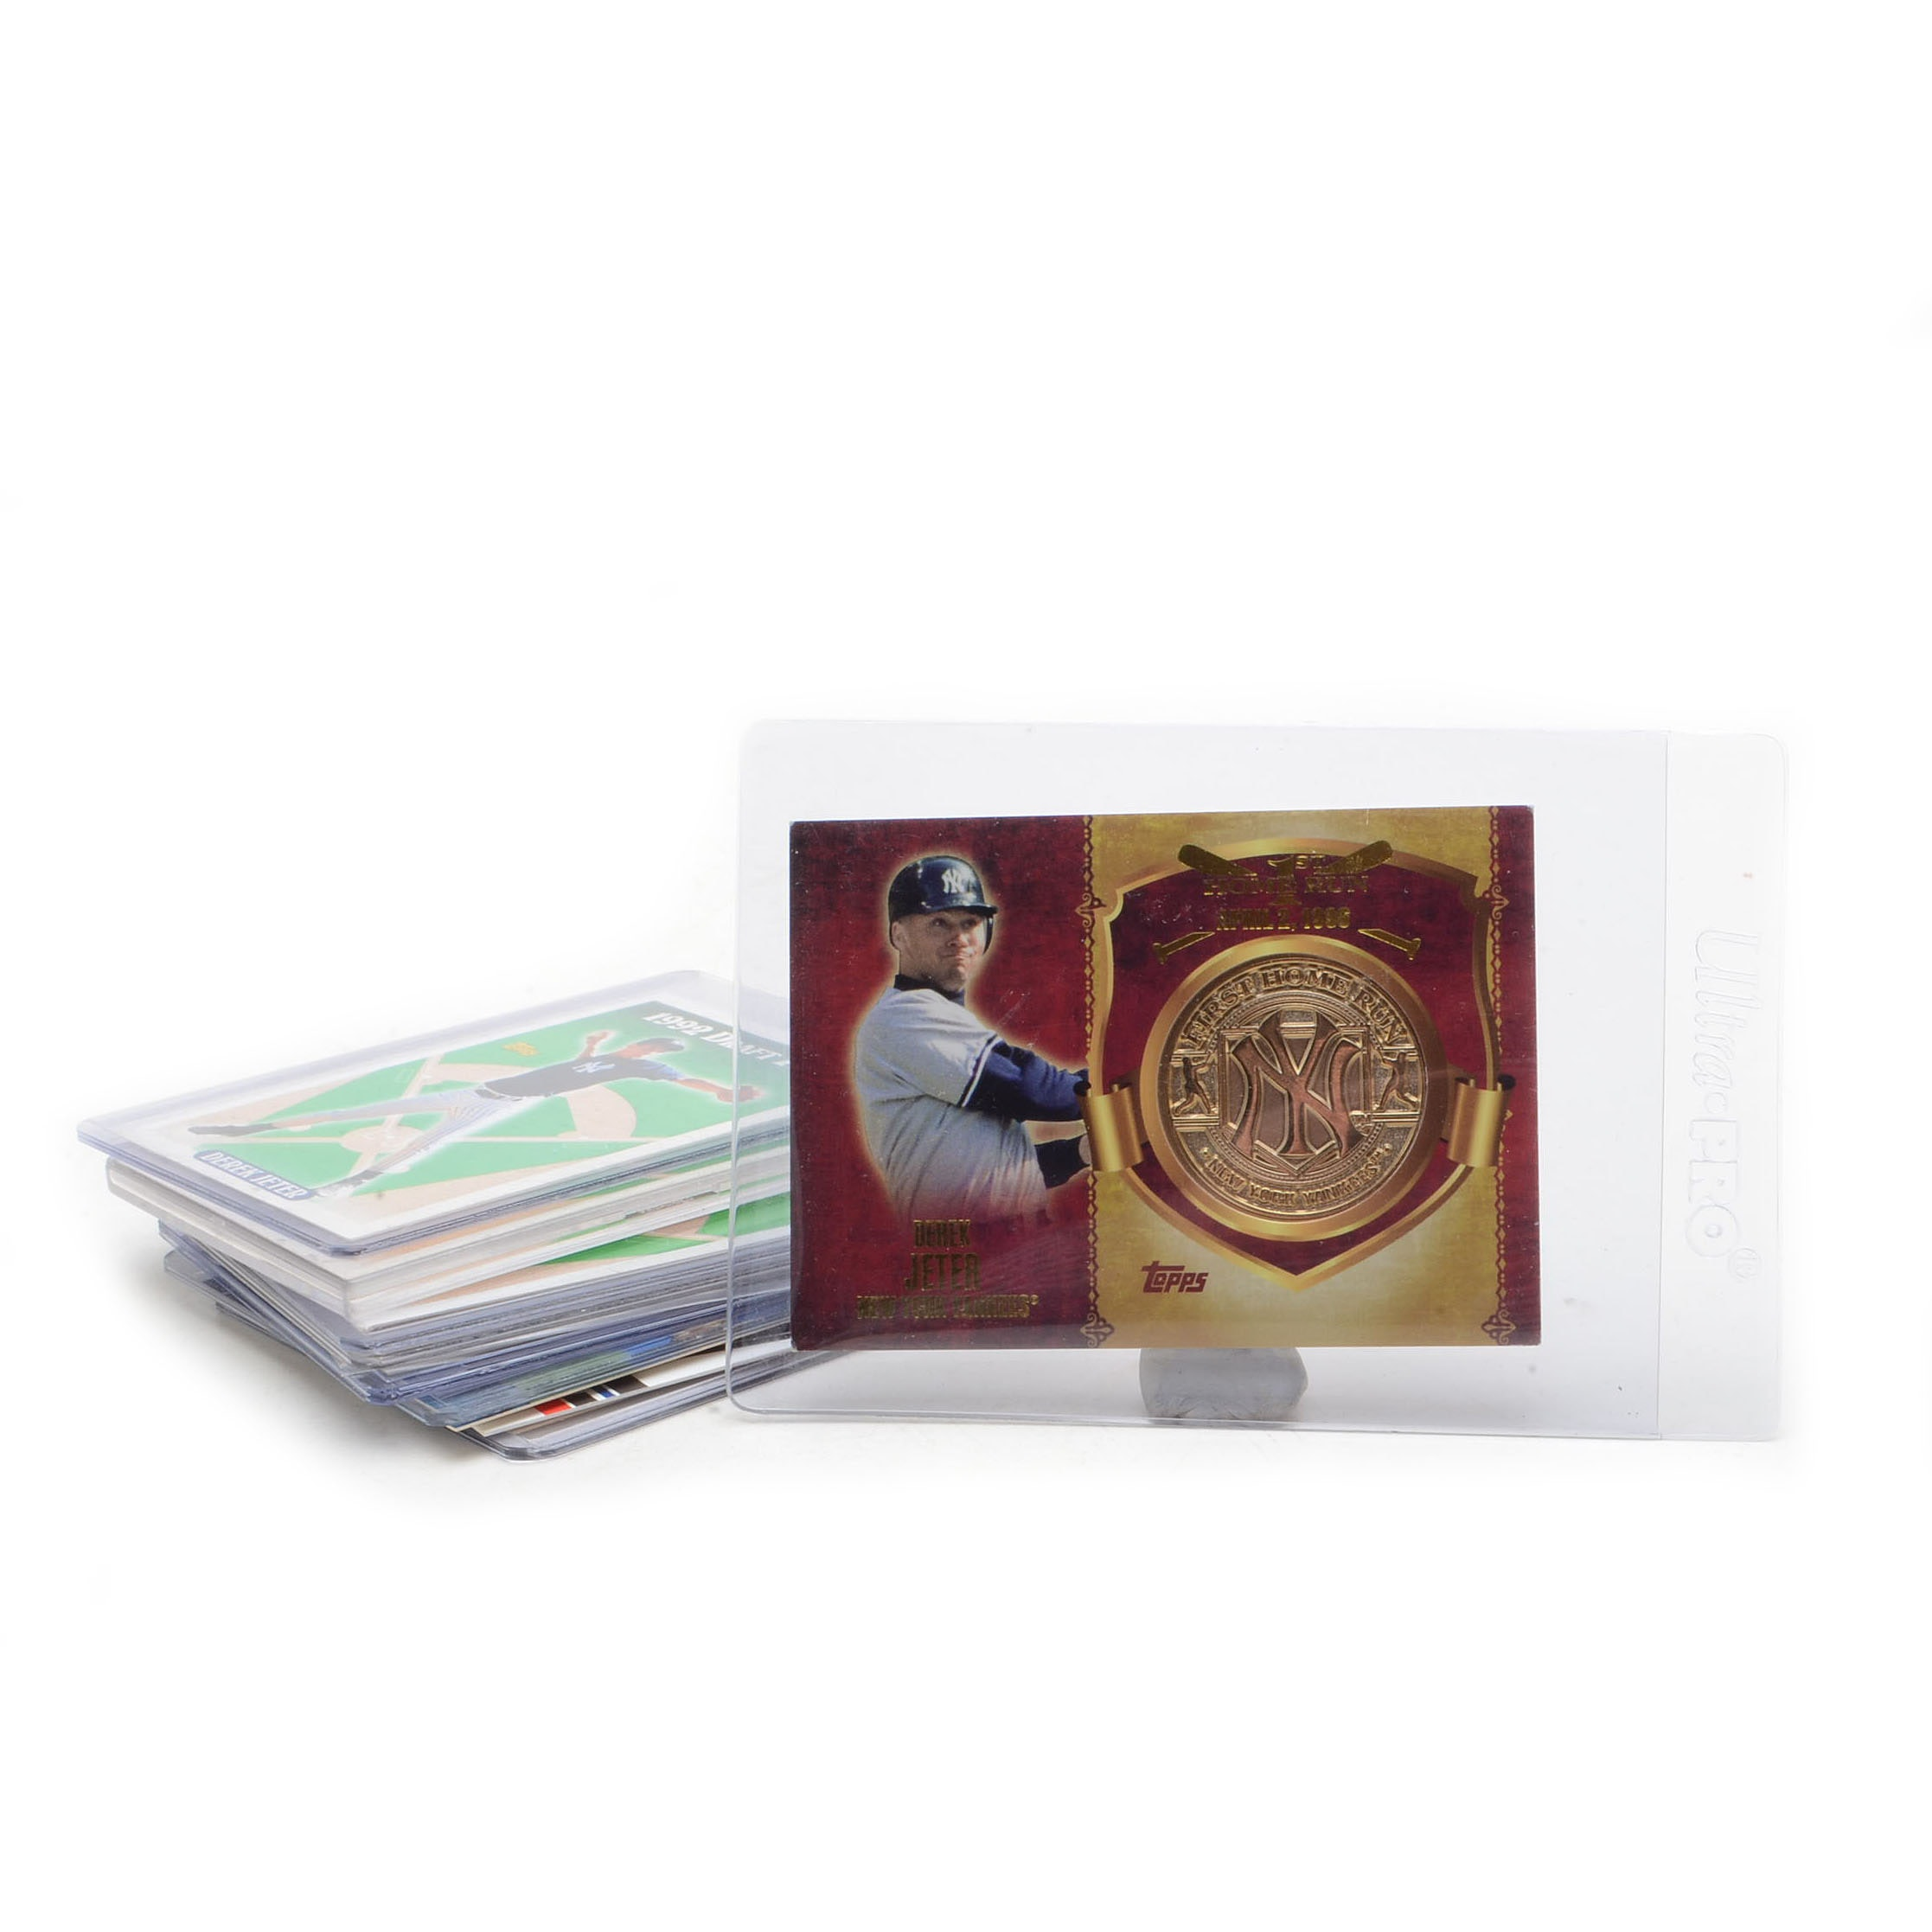 Derek Jeter New York Yankees Baseball Cards With Rookies